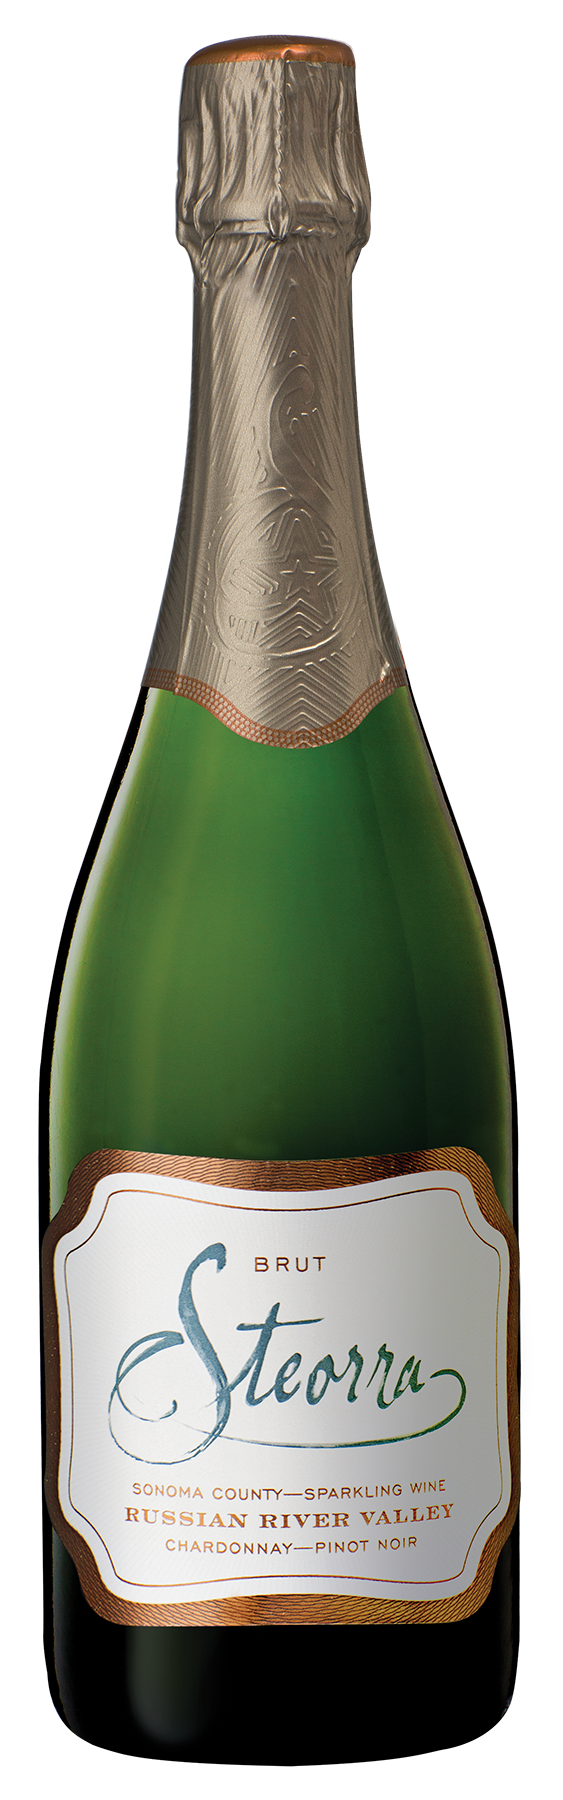 Russian River Valley Brut Sparkling Wine bottle shot